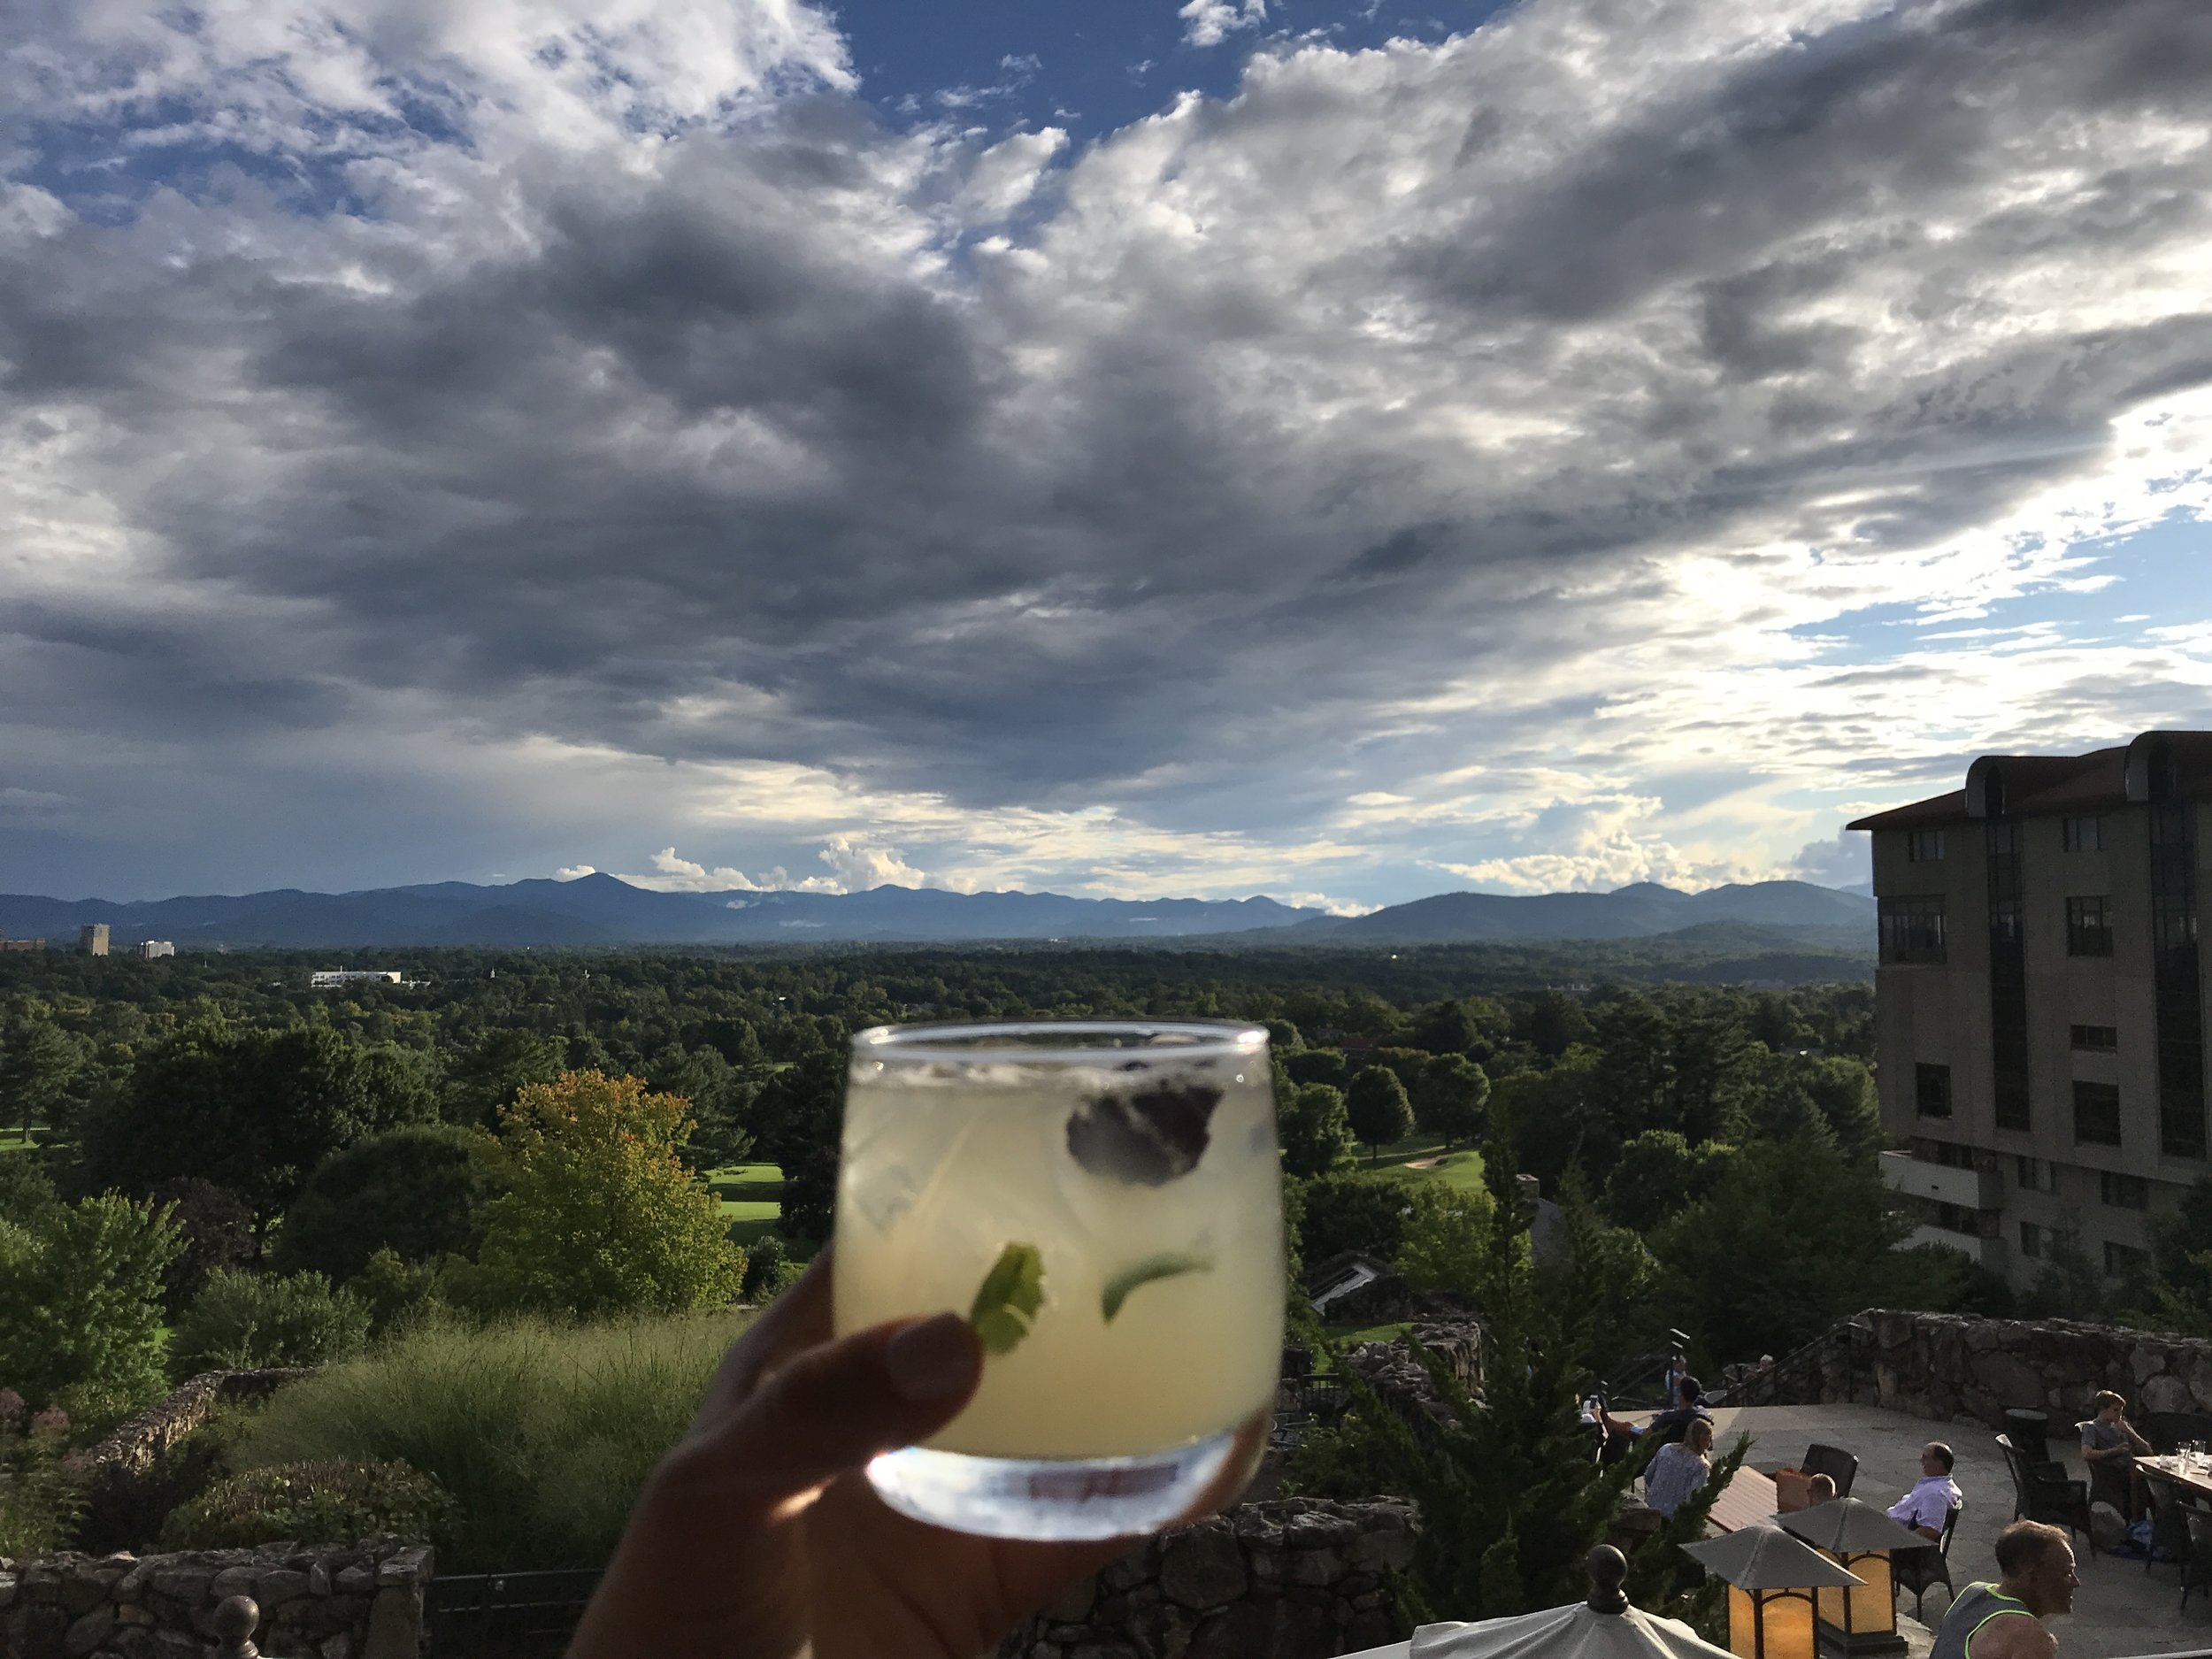 Cheers to endless views